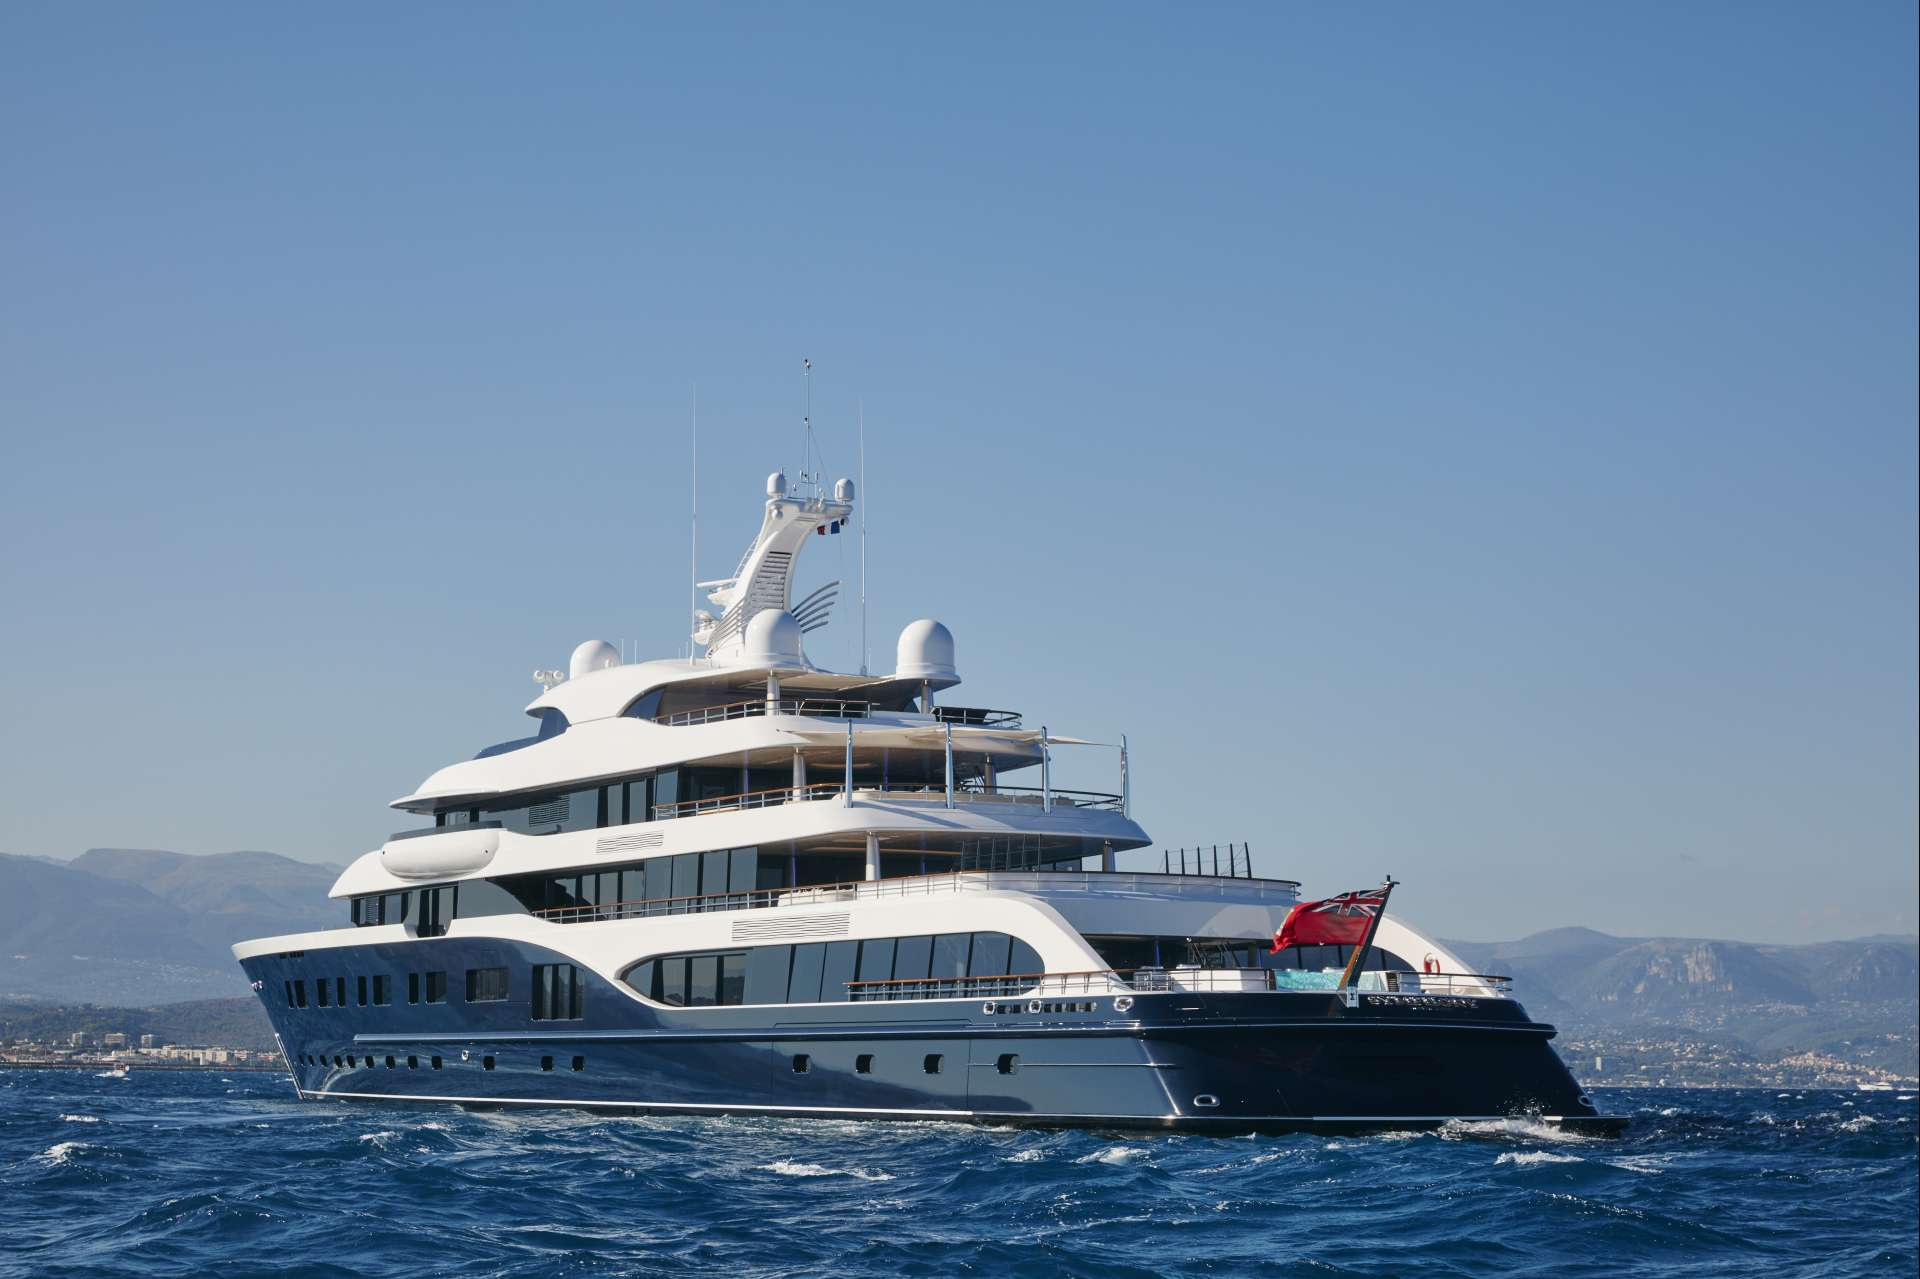 Symphony Feadship Royal Dutch Shipyards